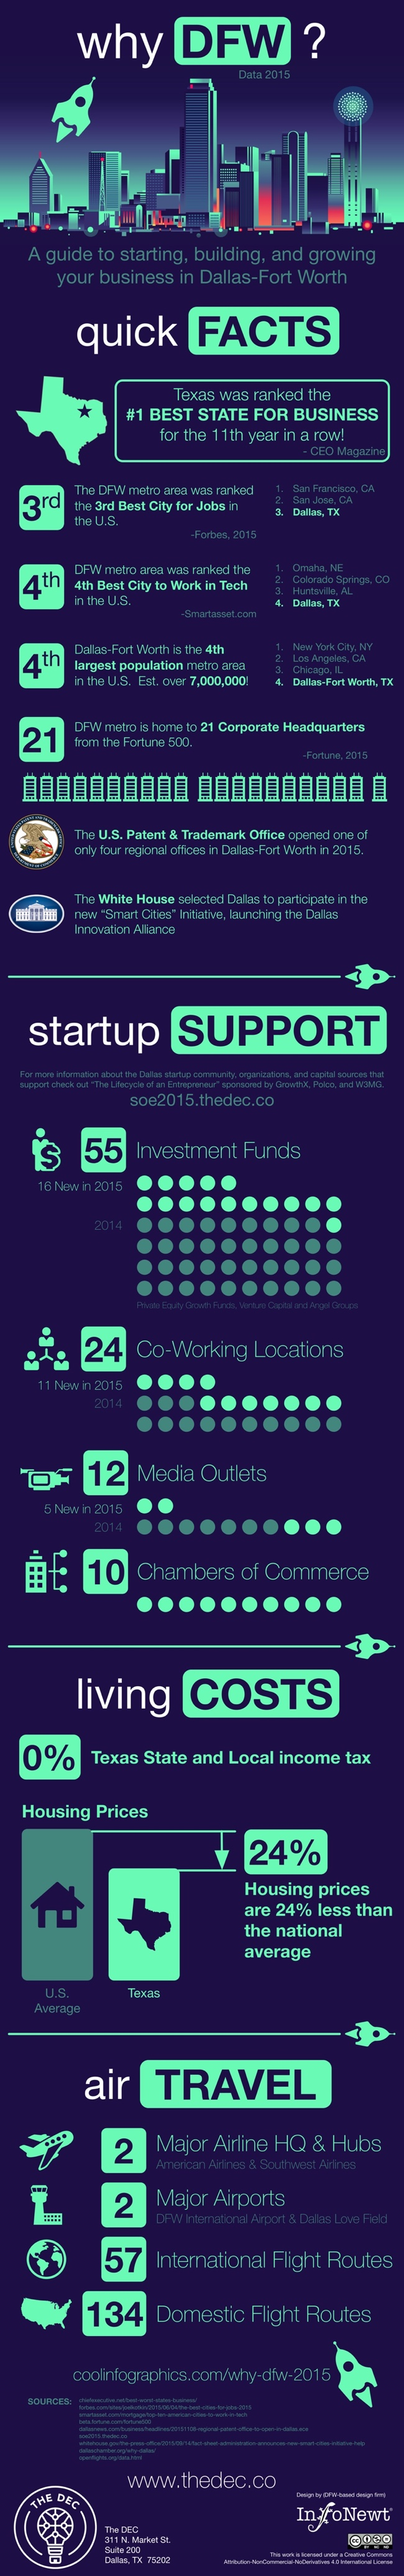 Why DFW? 2015 infographic